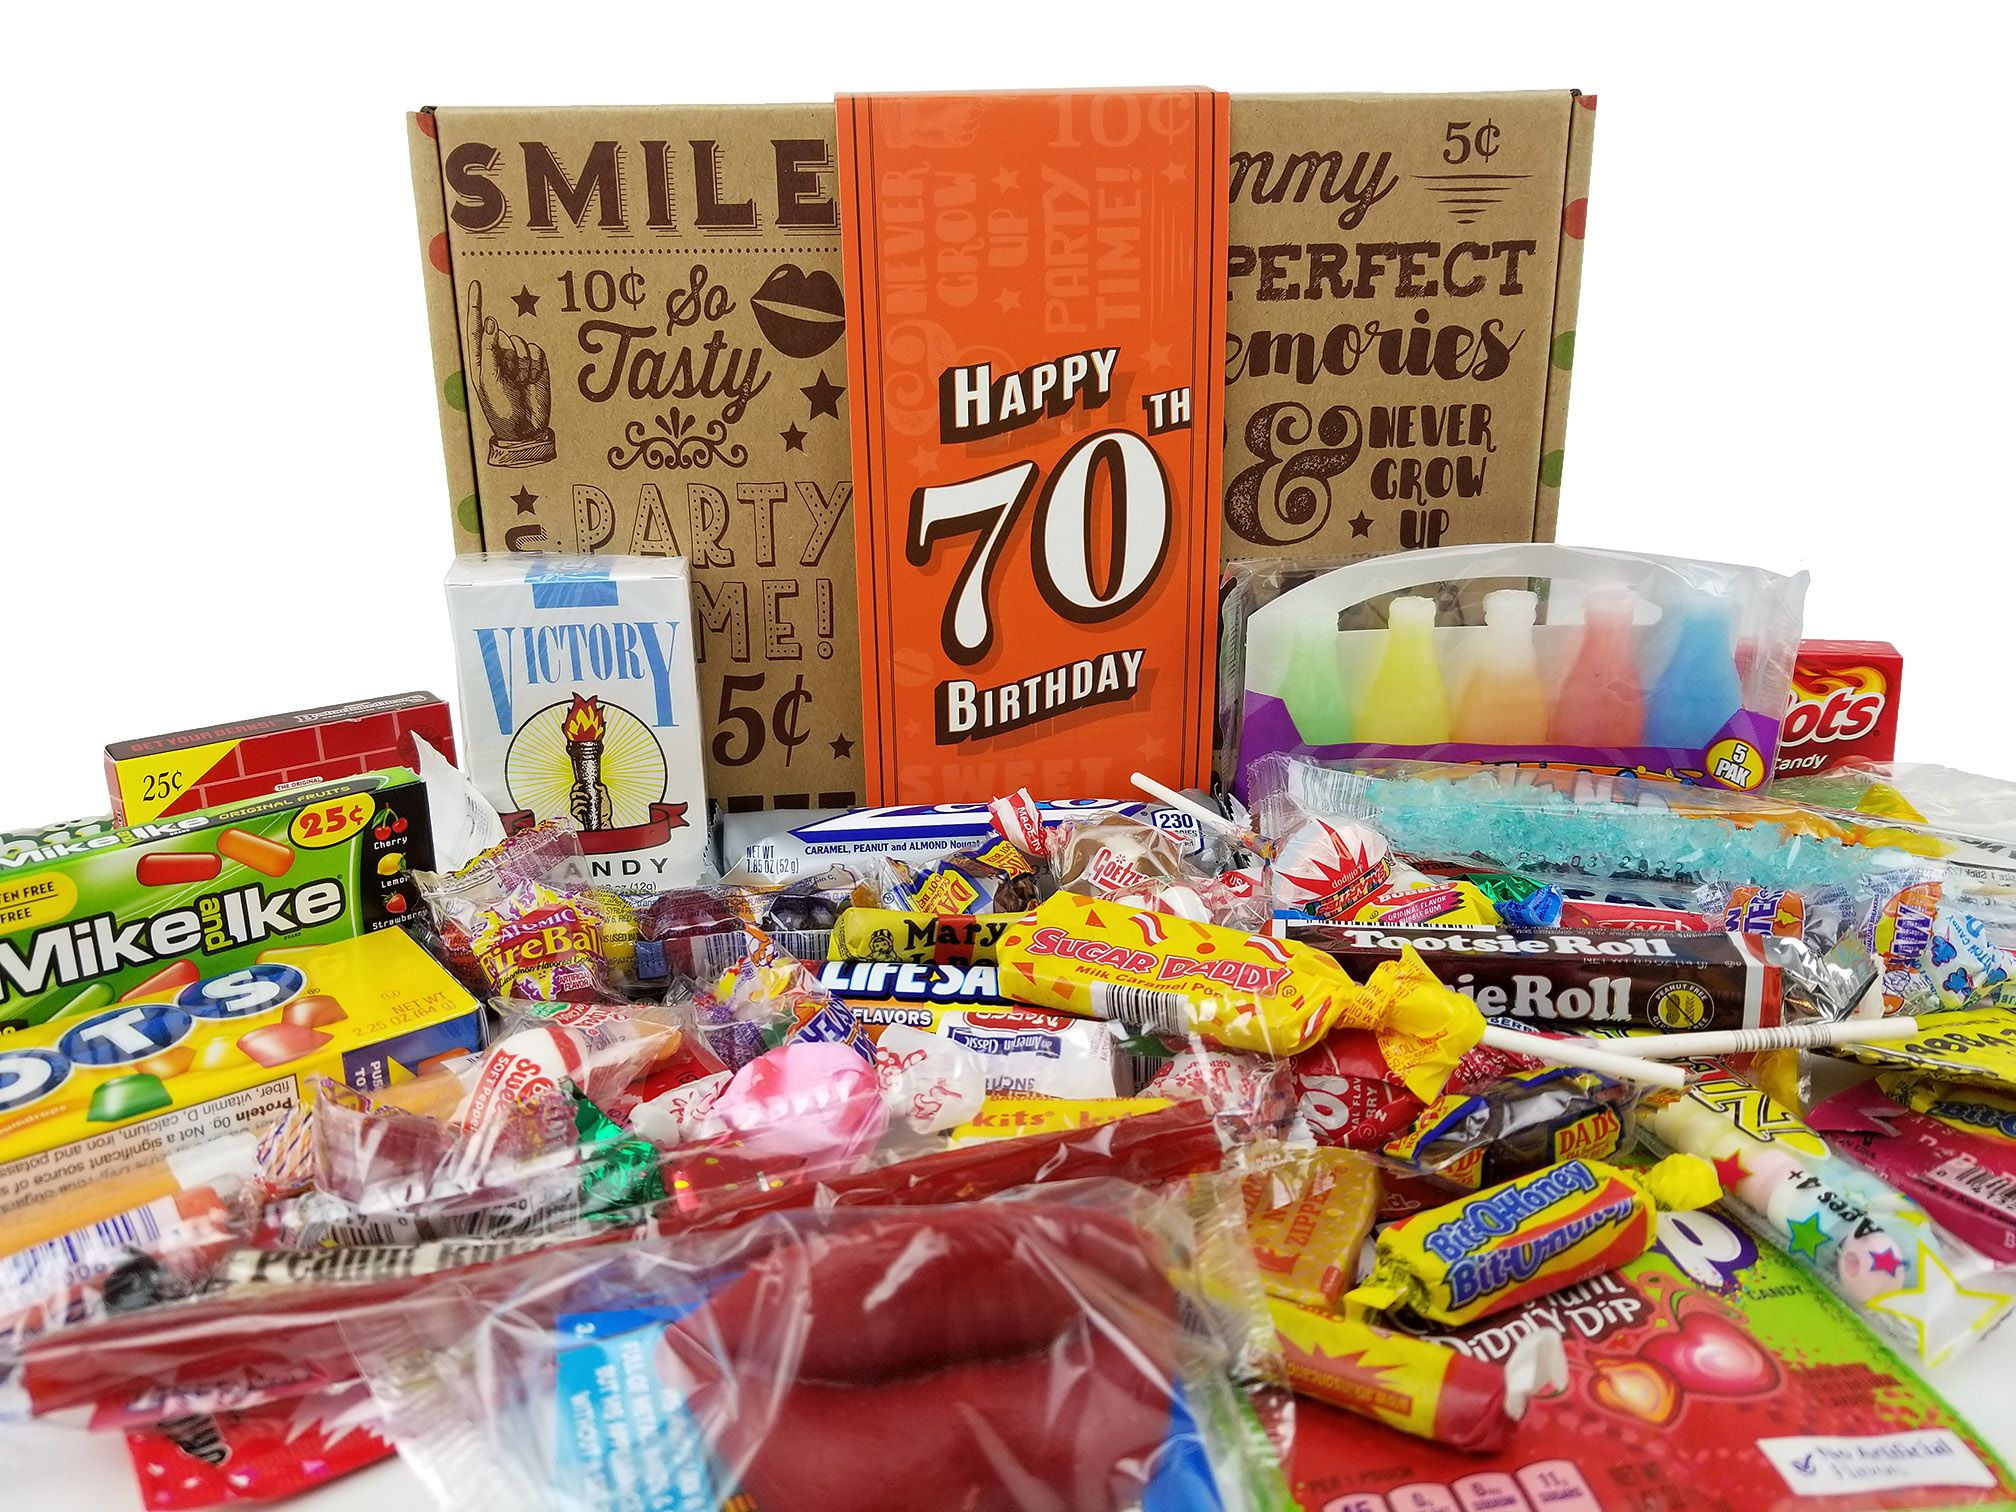 A Fun And Creative Way To Celebrate 70th Birthday Nostalgia Vintage Candy For Men Or Woman Turning 70 Years Old Check Us Out Over On Amazon